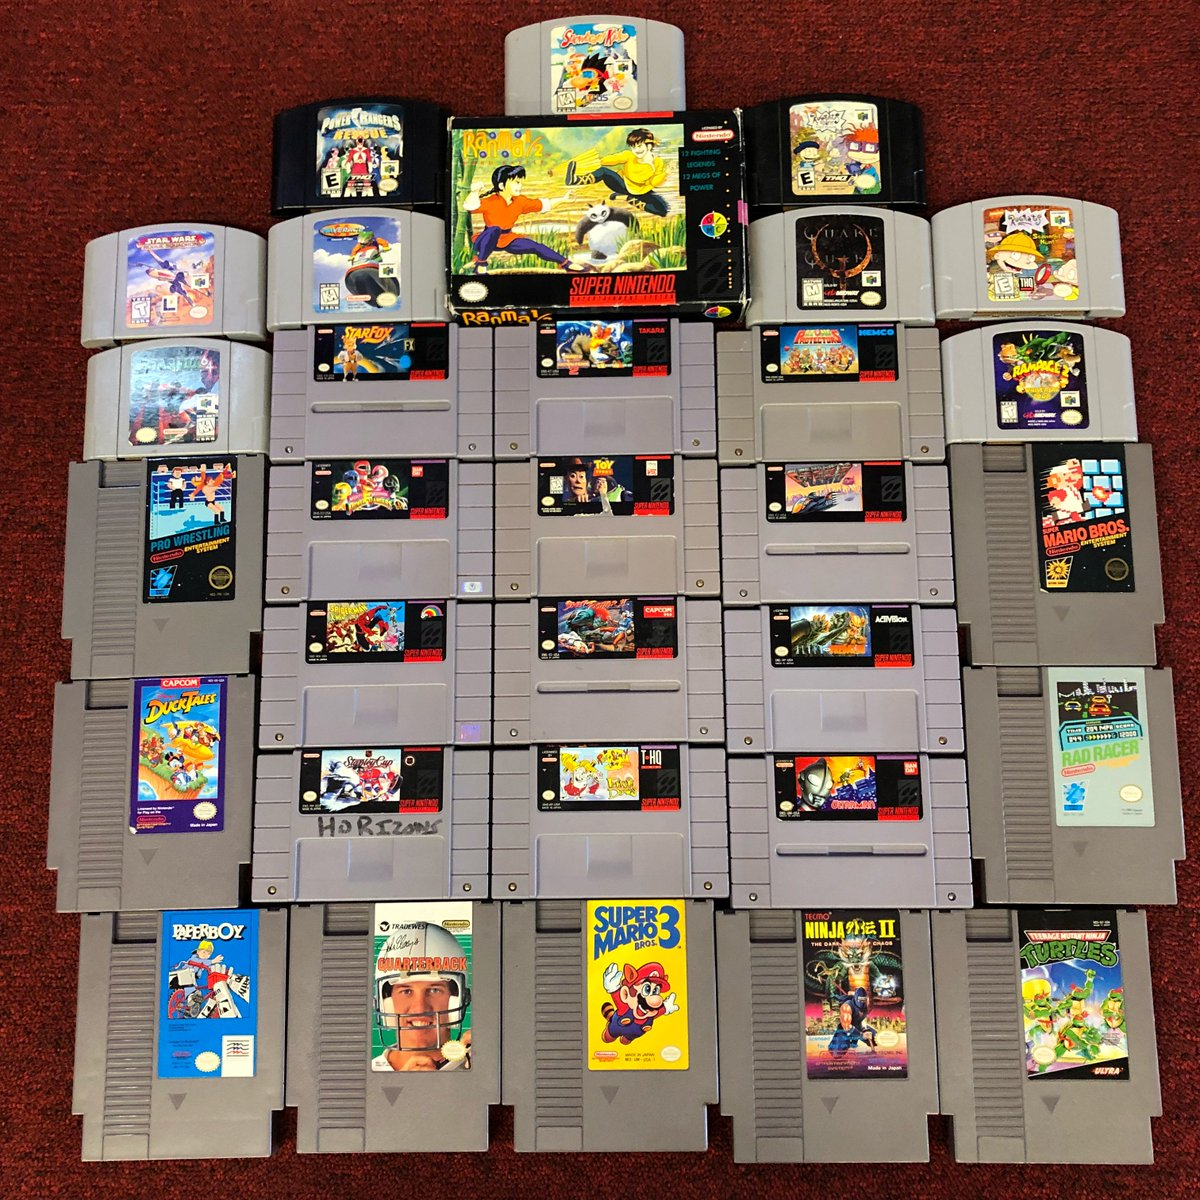 Digital Press On Twitter Another Nice Nintendo Lot Was Just